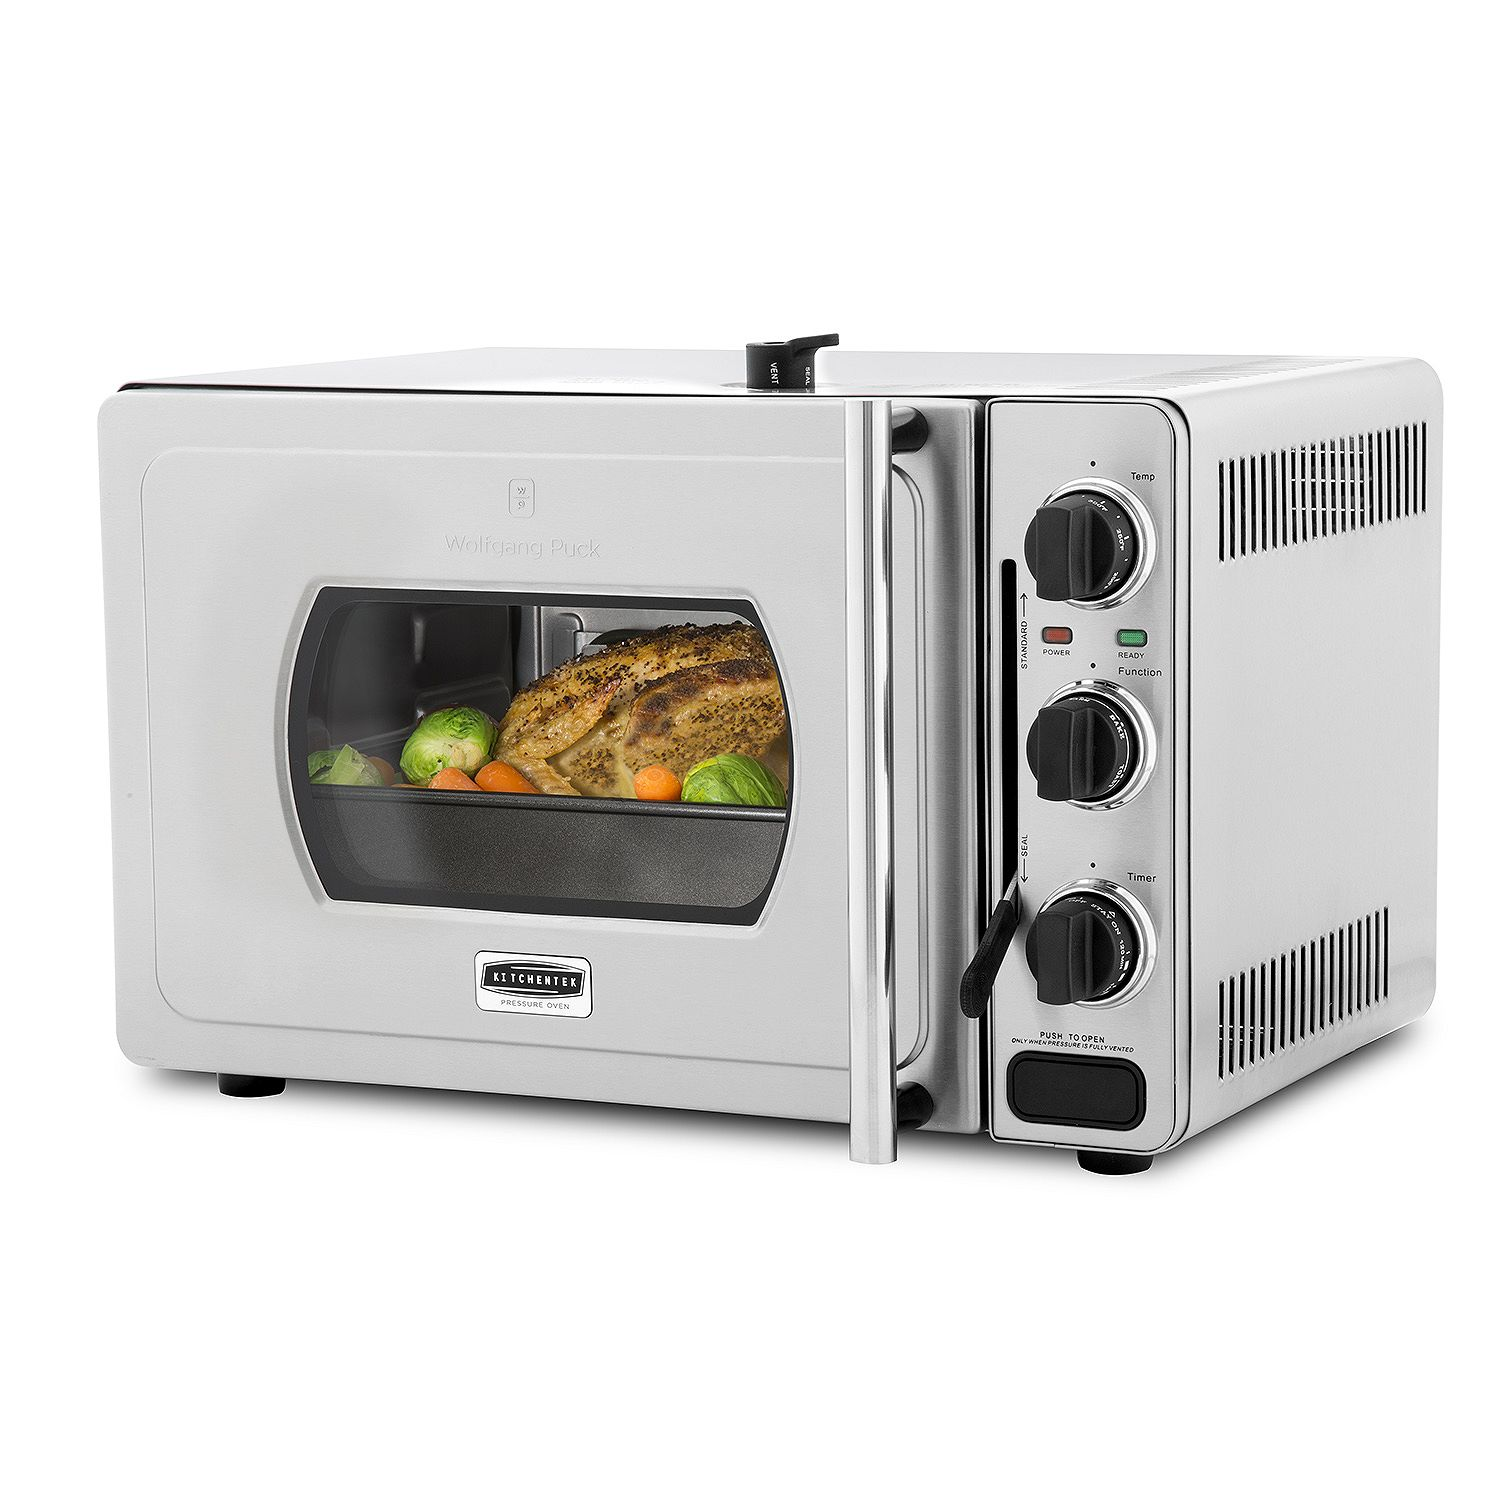 Wolfgang Puck Pressure All-in-one oven and pressure cooke...